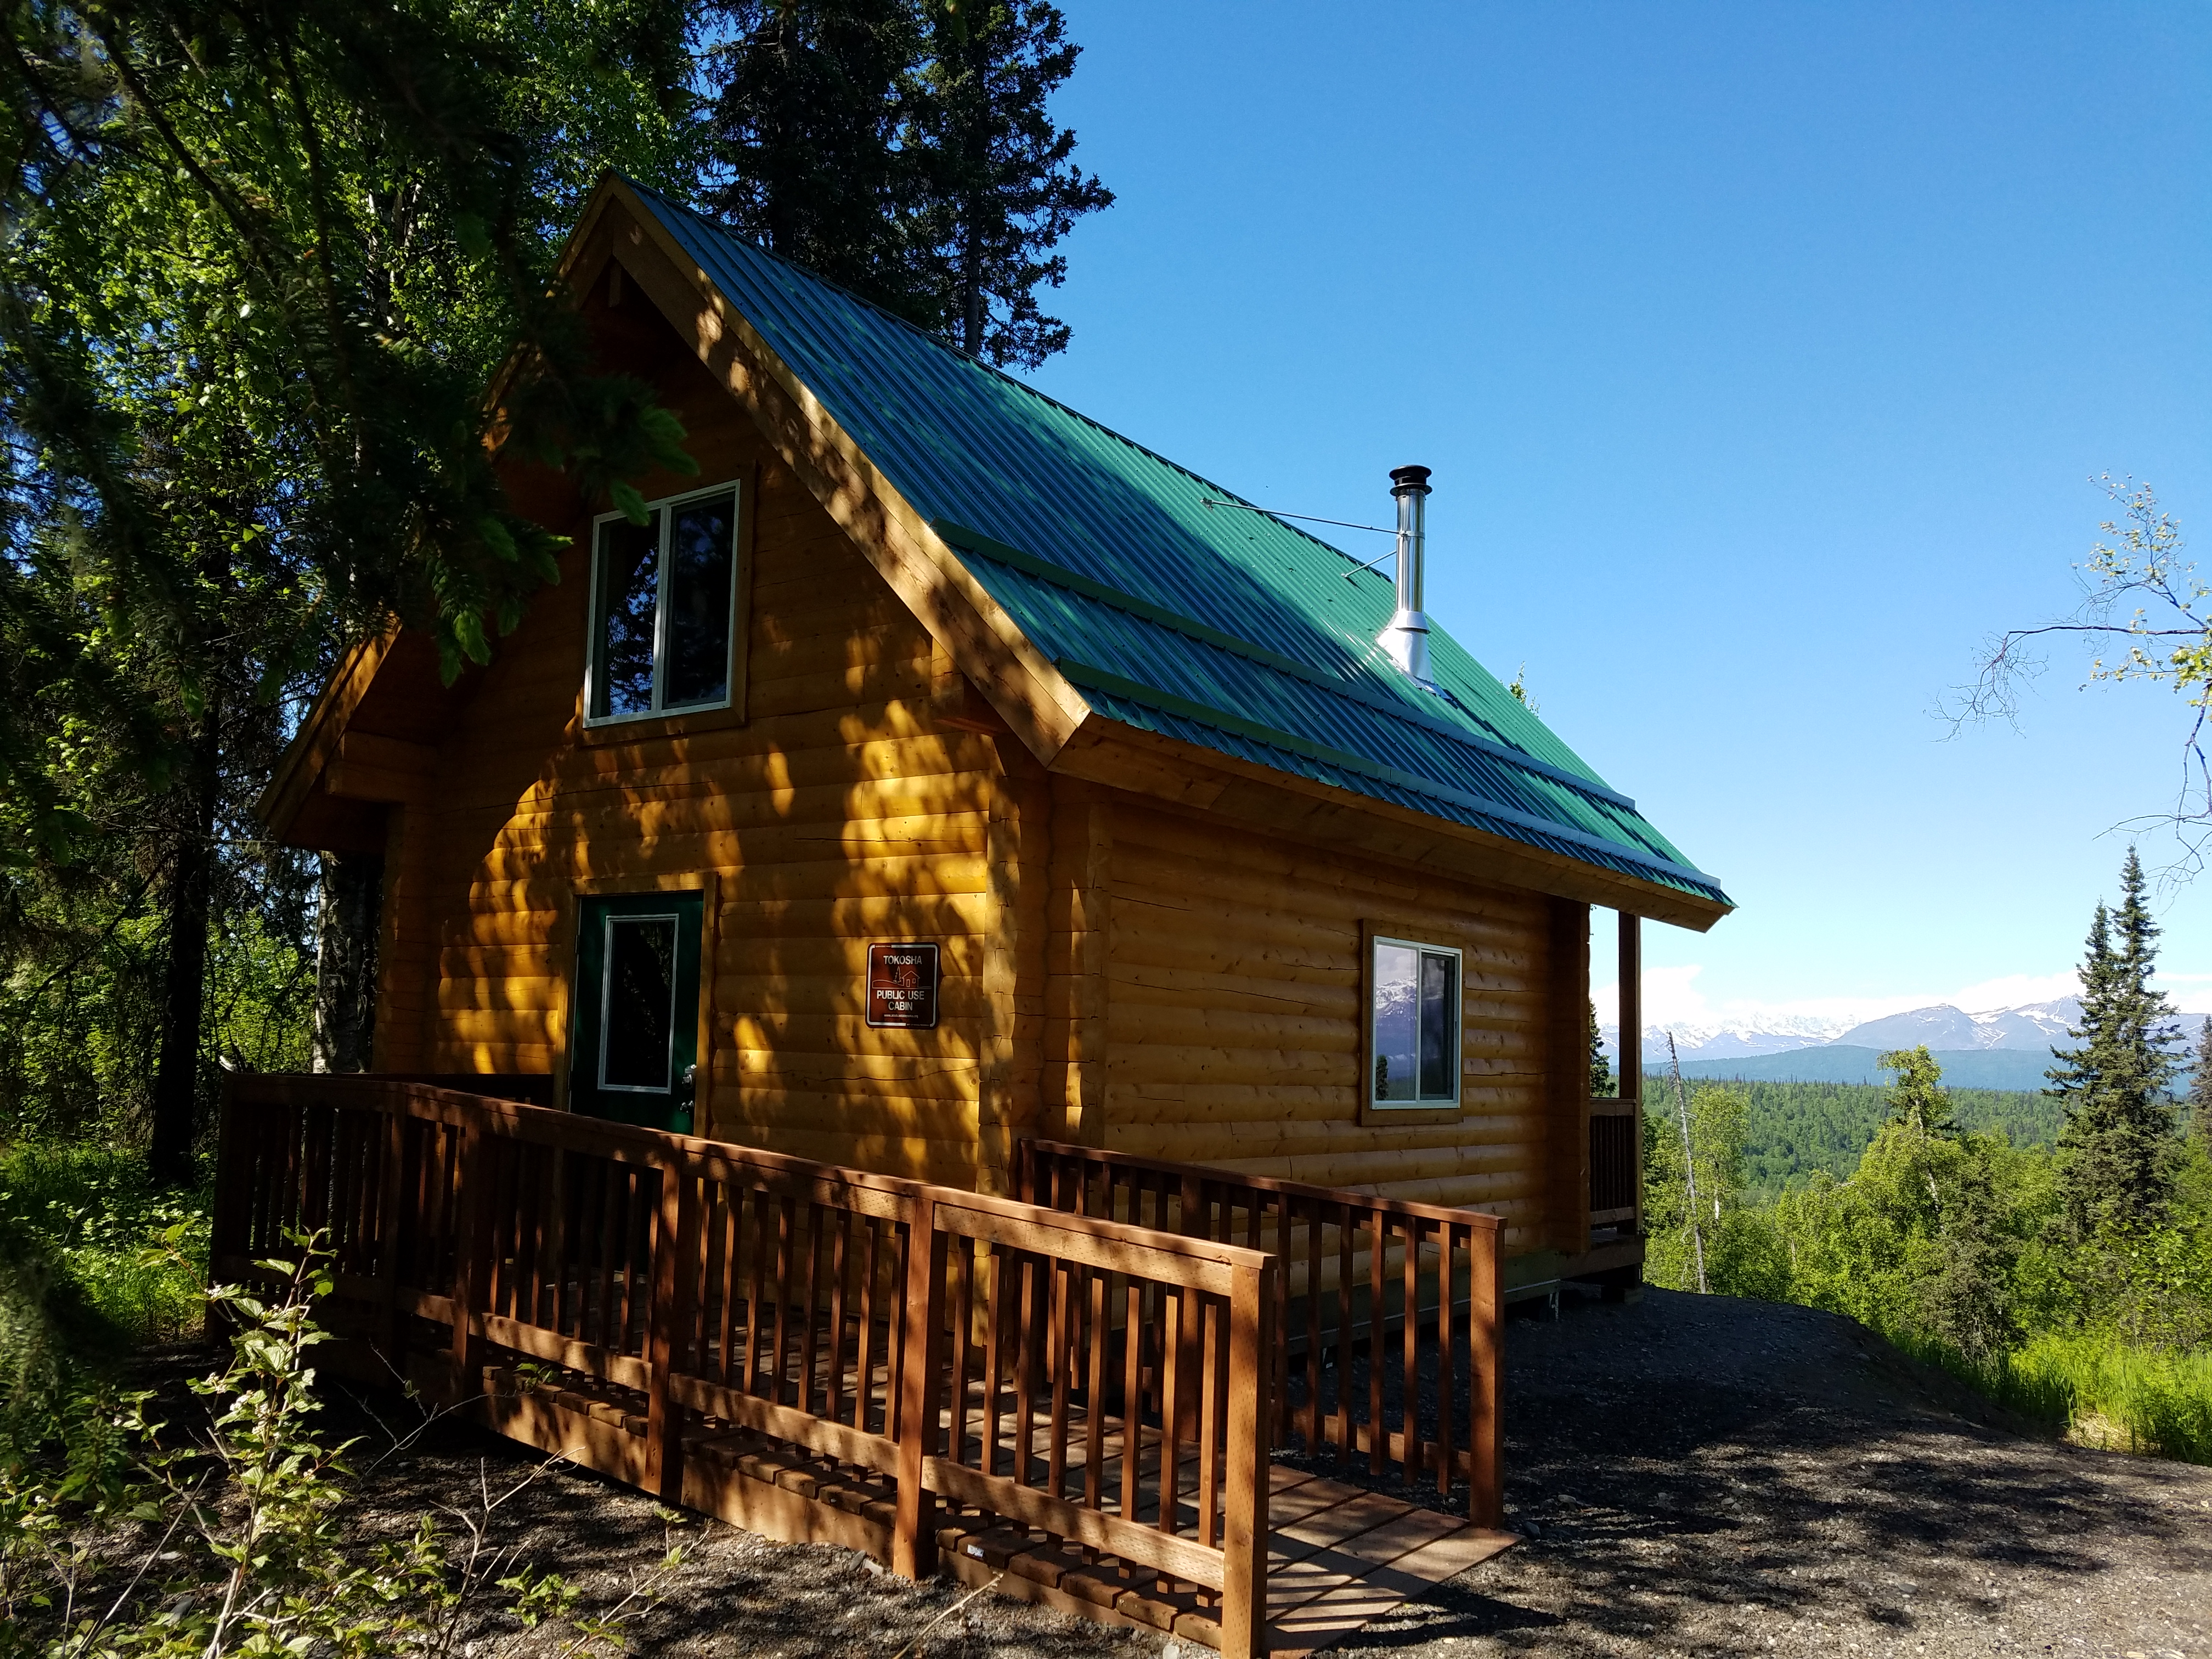 judges judge near alaska s cabins old in for property courthouse sale row treasure houses circa green